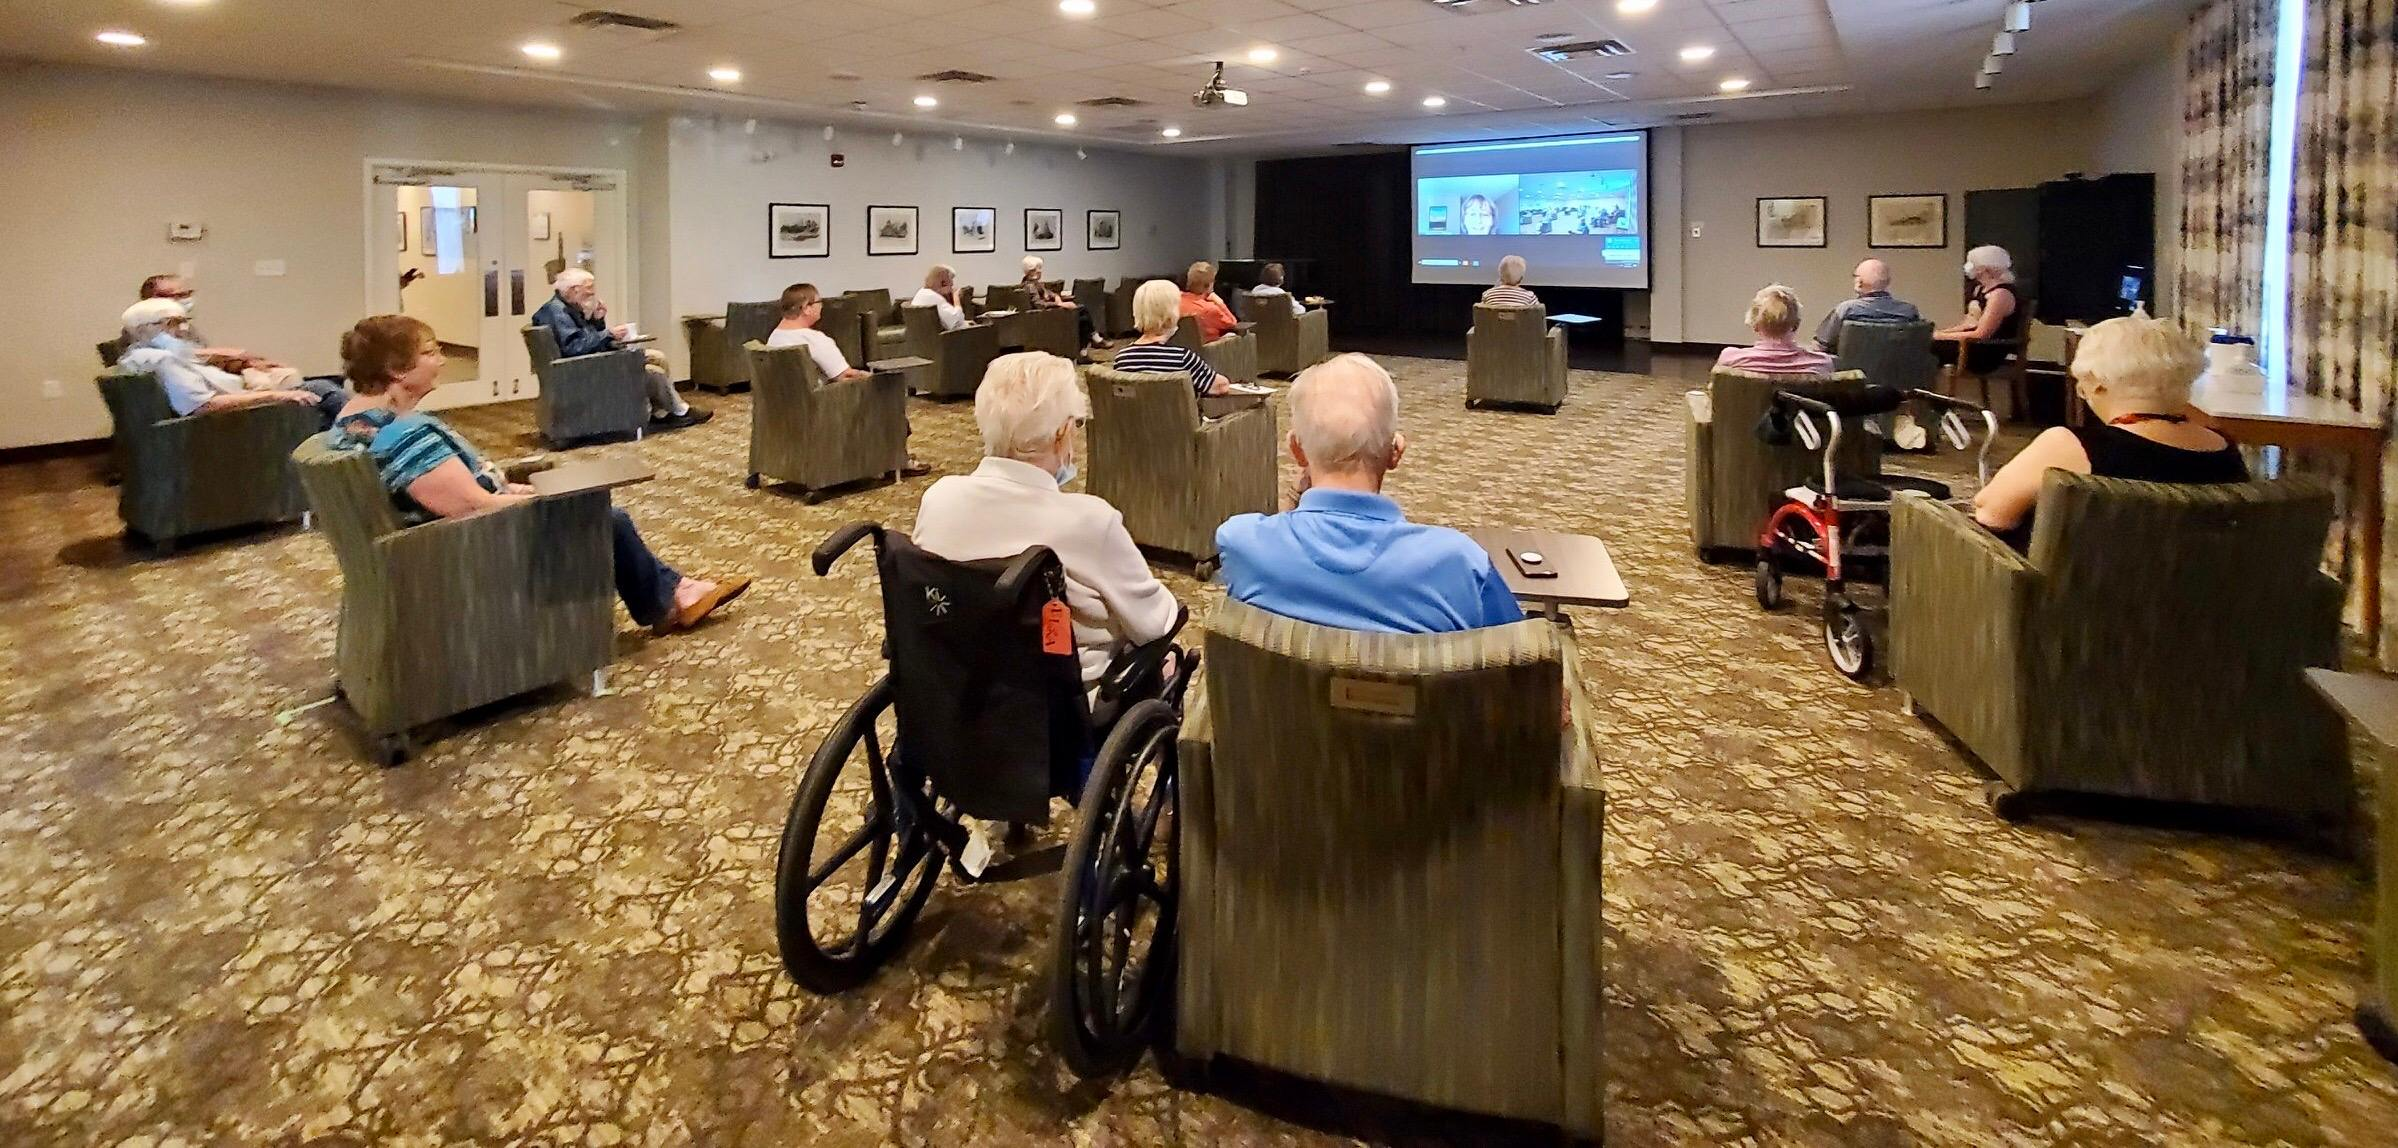 Residents in the Fish Creek theatre for the Music Appreciation program